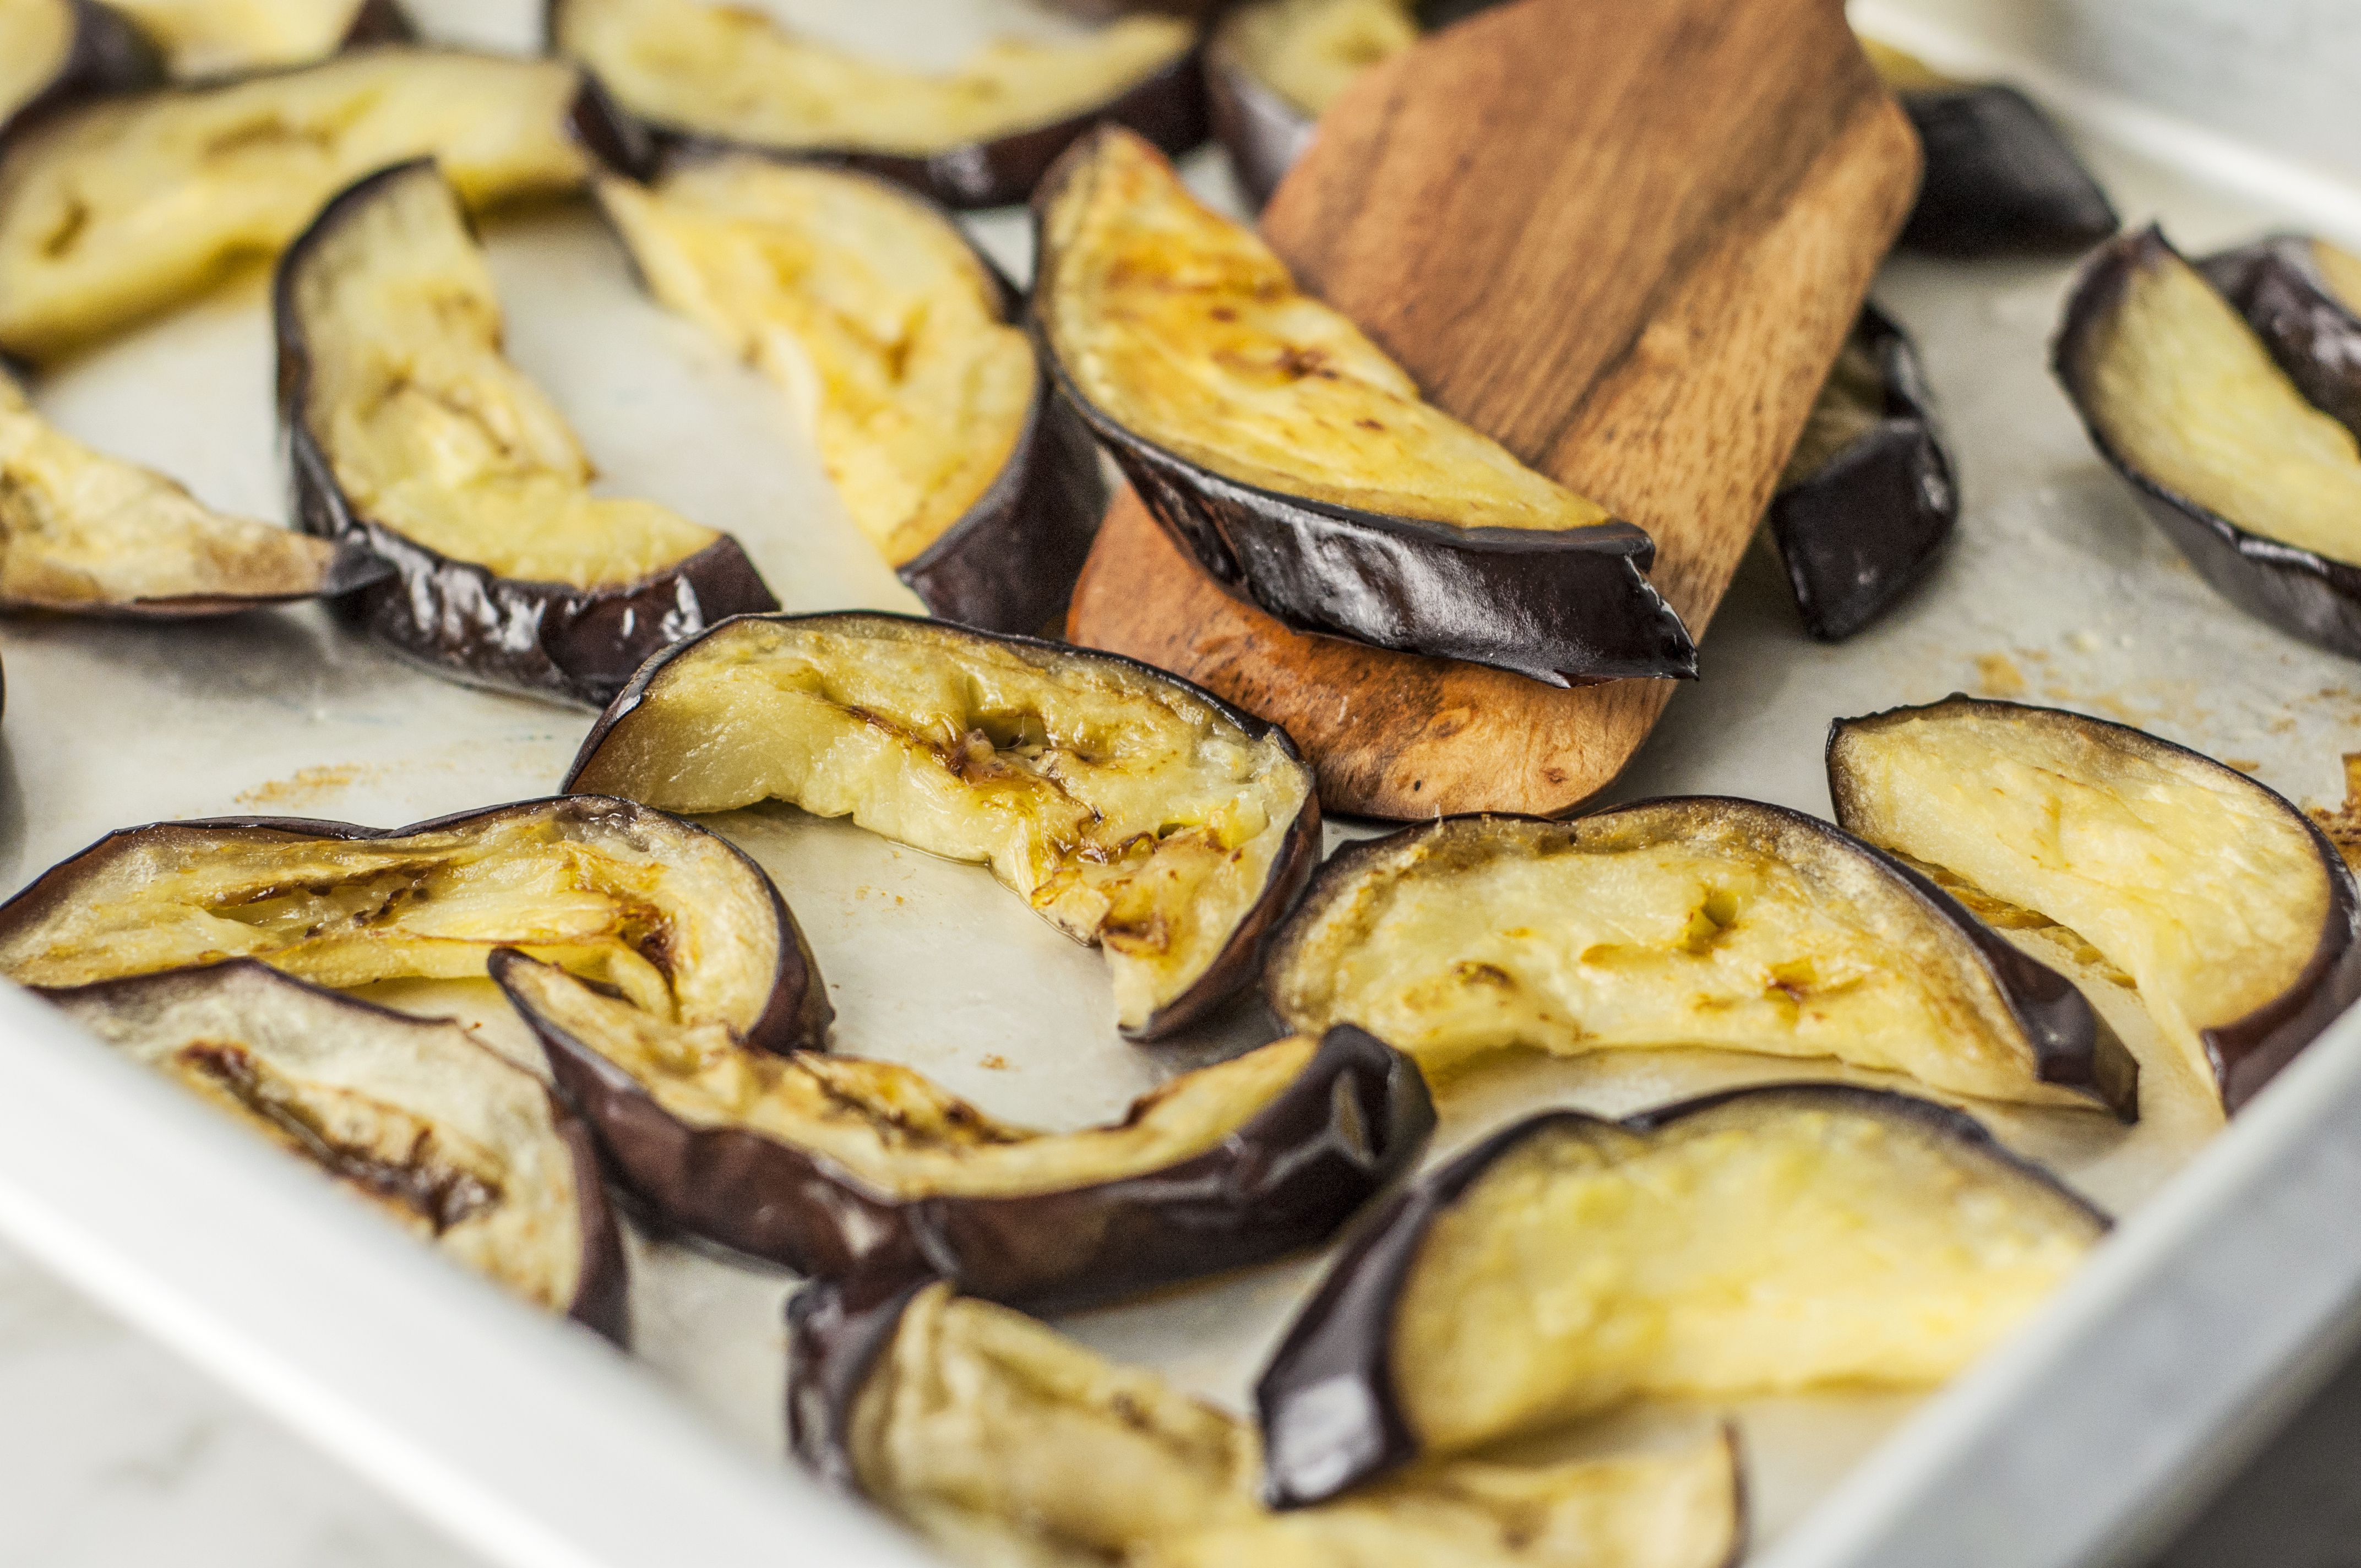 Eggplant is nicely browned after cooking